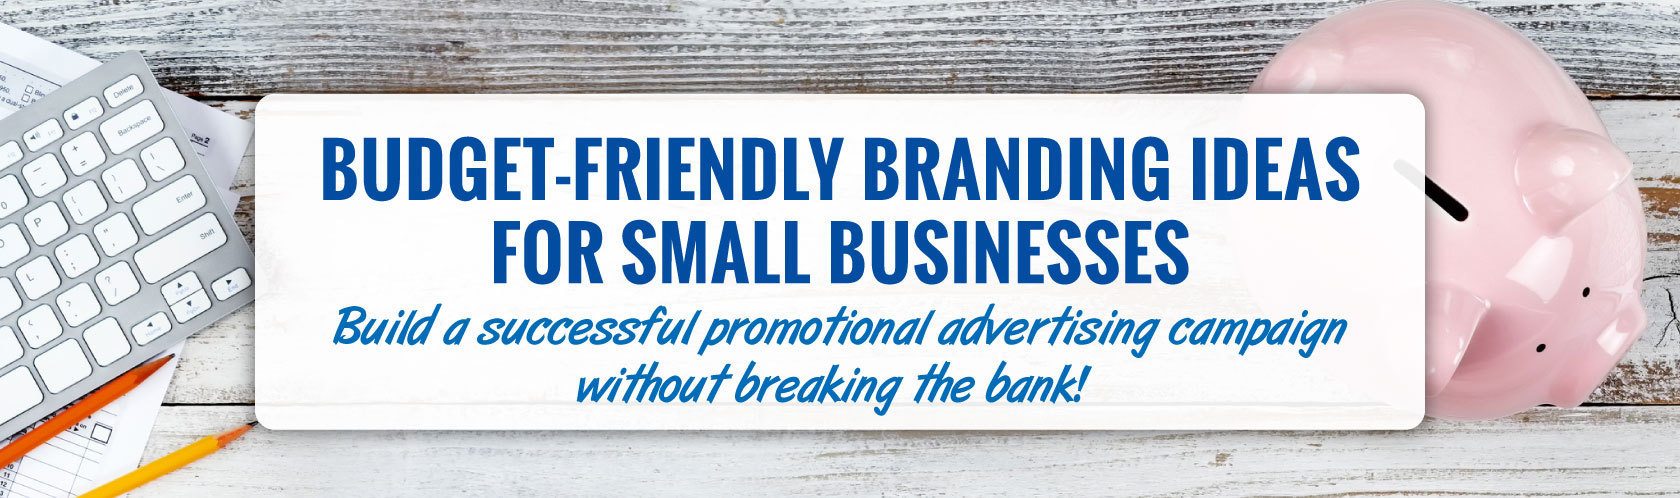 Budget-Friendly Branding Ideas for Small Businesses